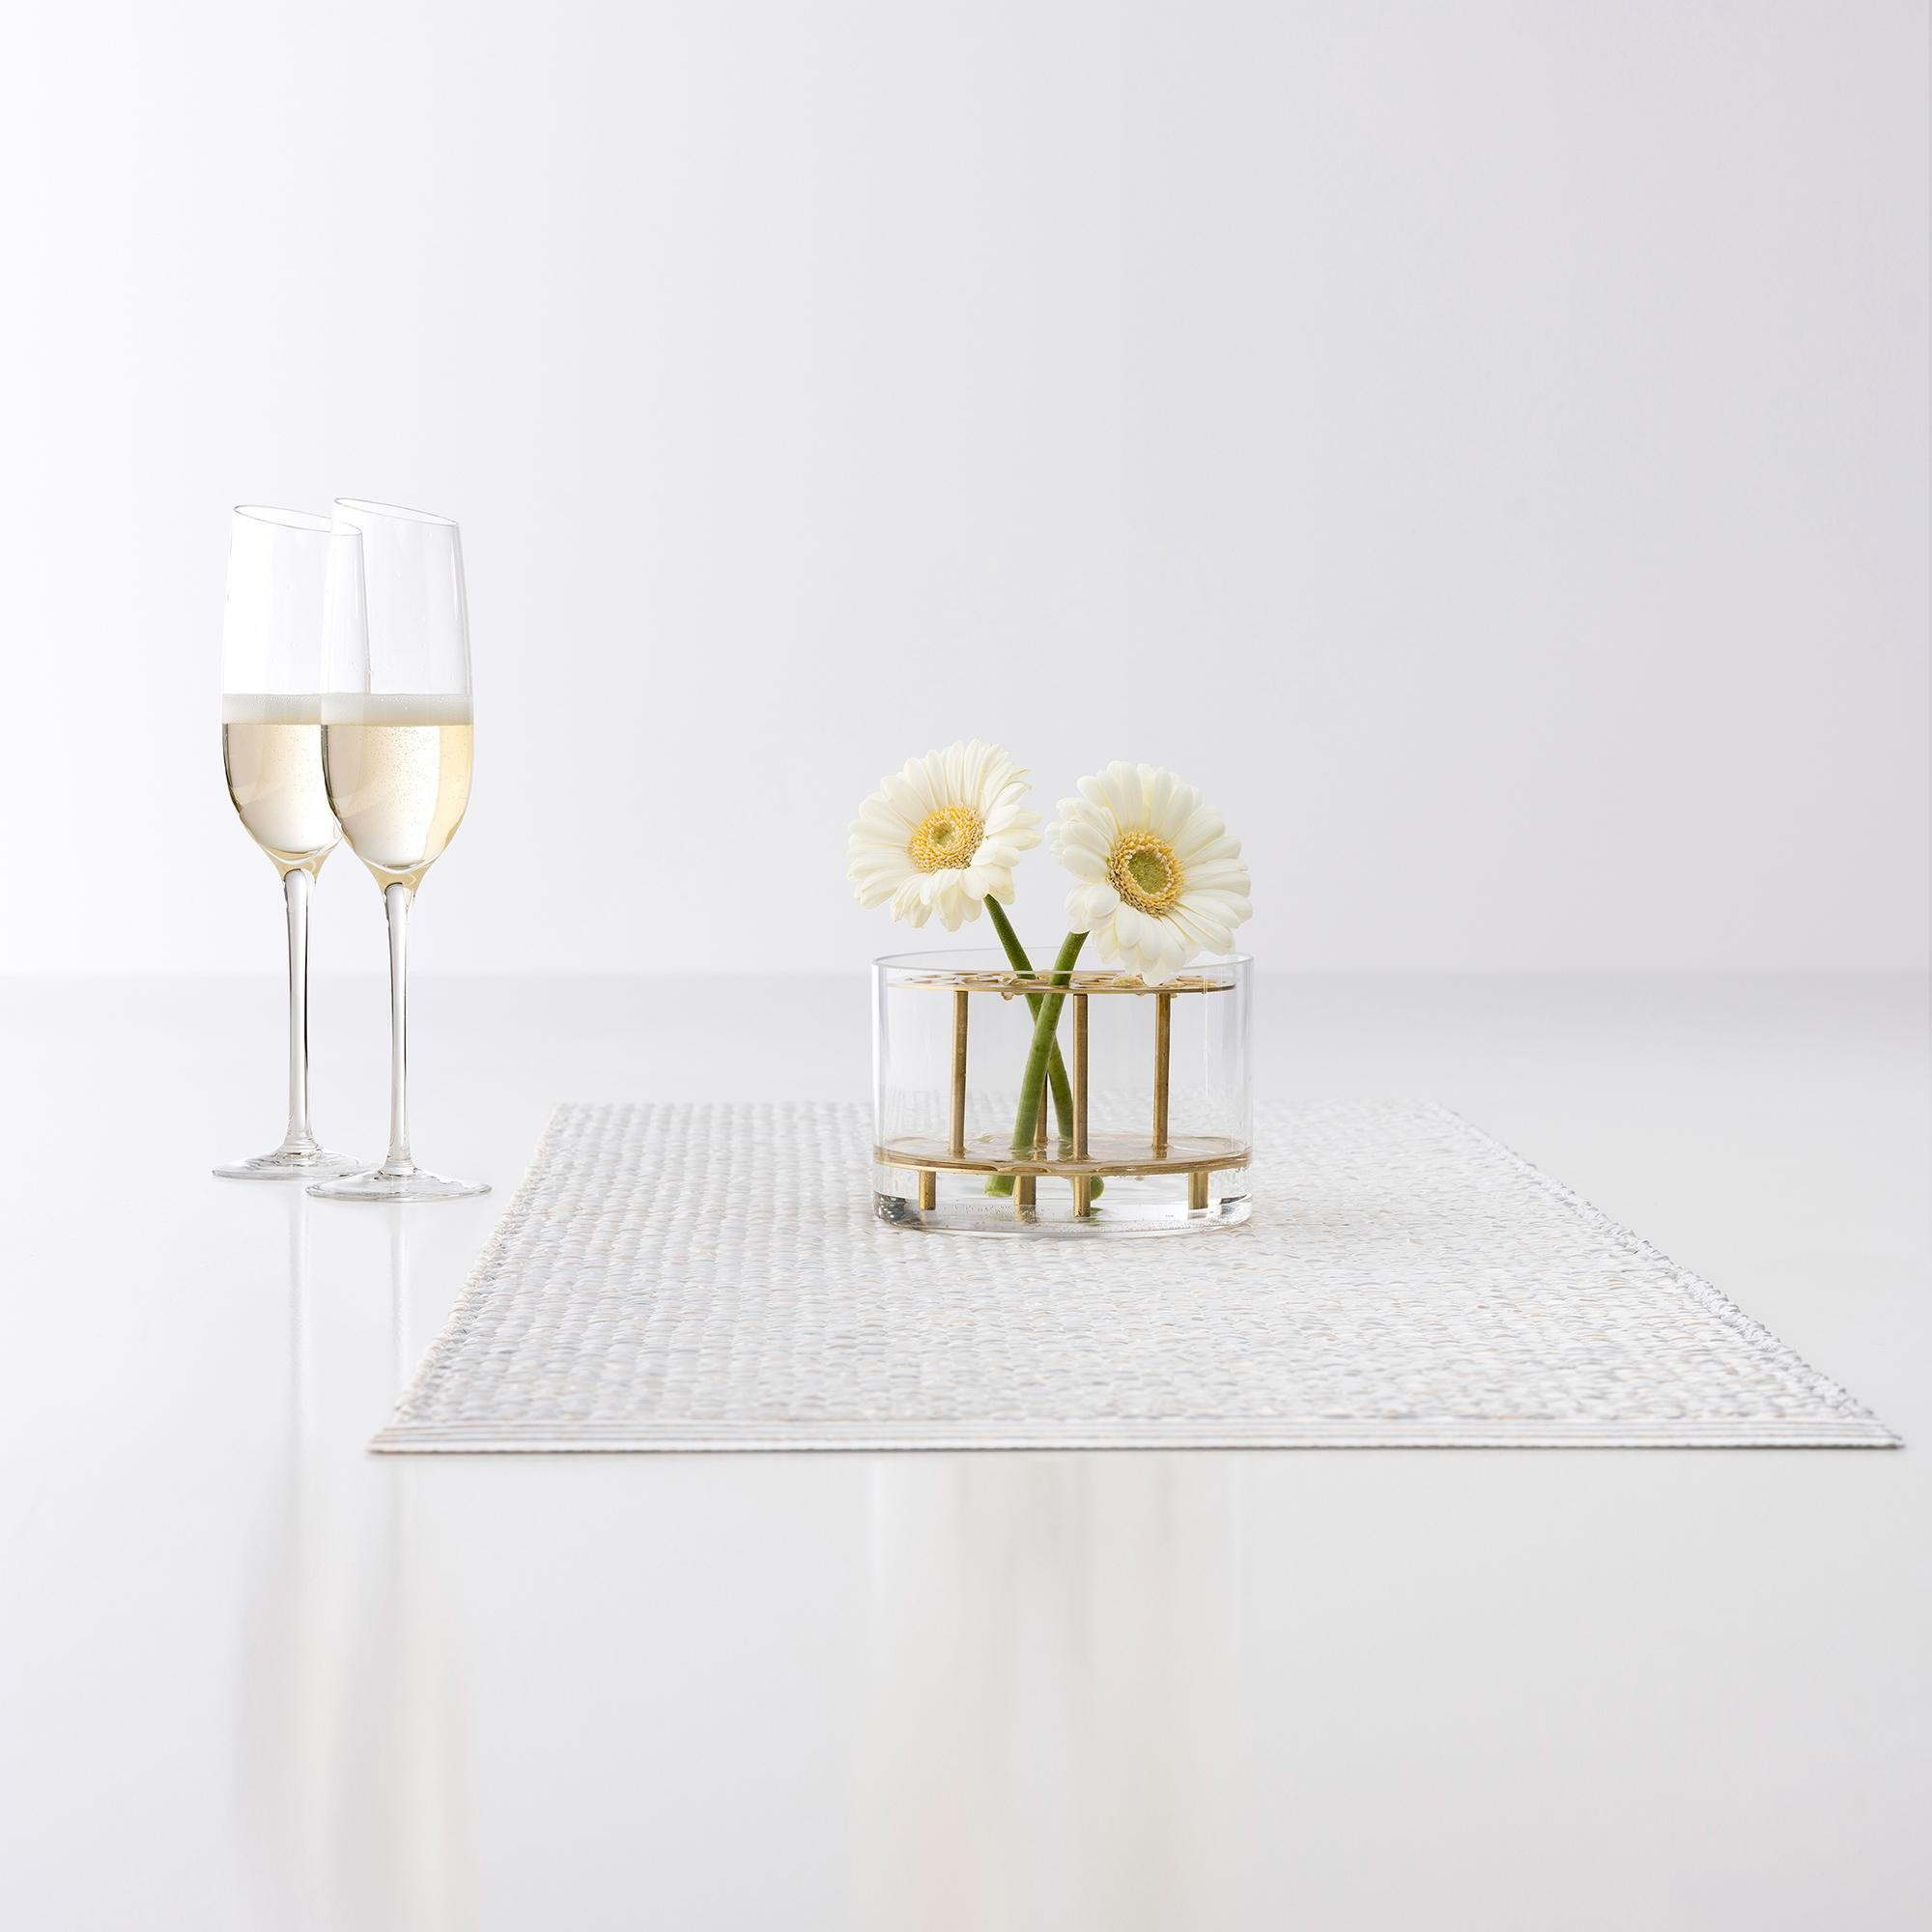 Pappelina Svea Table Runner 36x130cm Ambientedirect